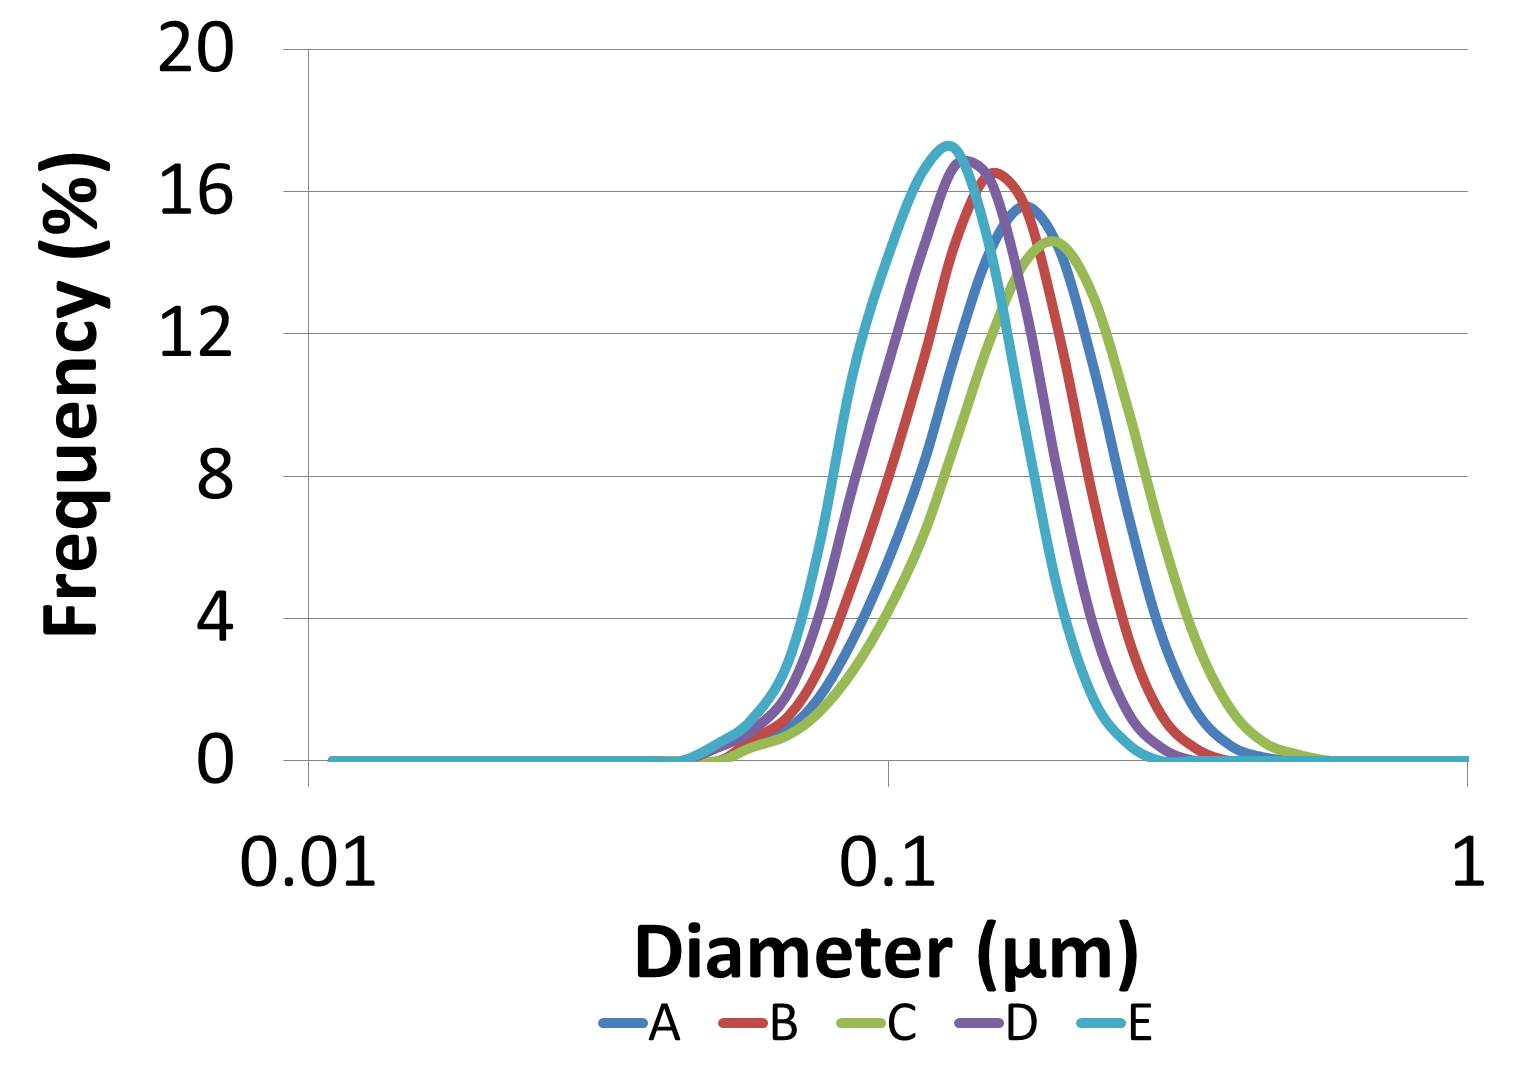 Figure 3 Particle size distribution for filtration